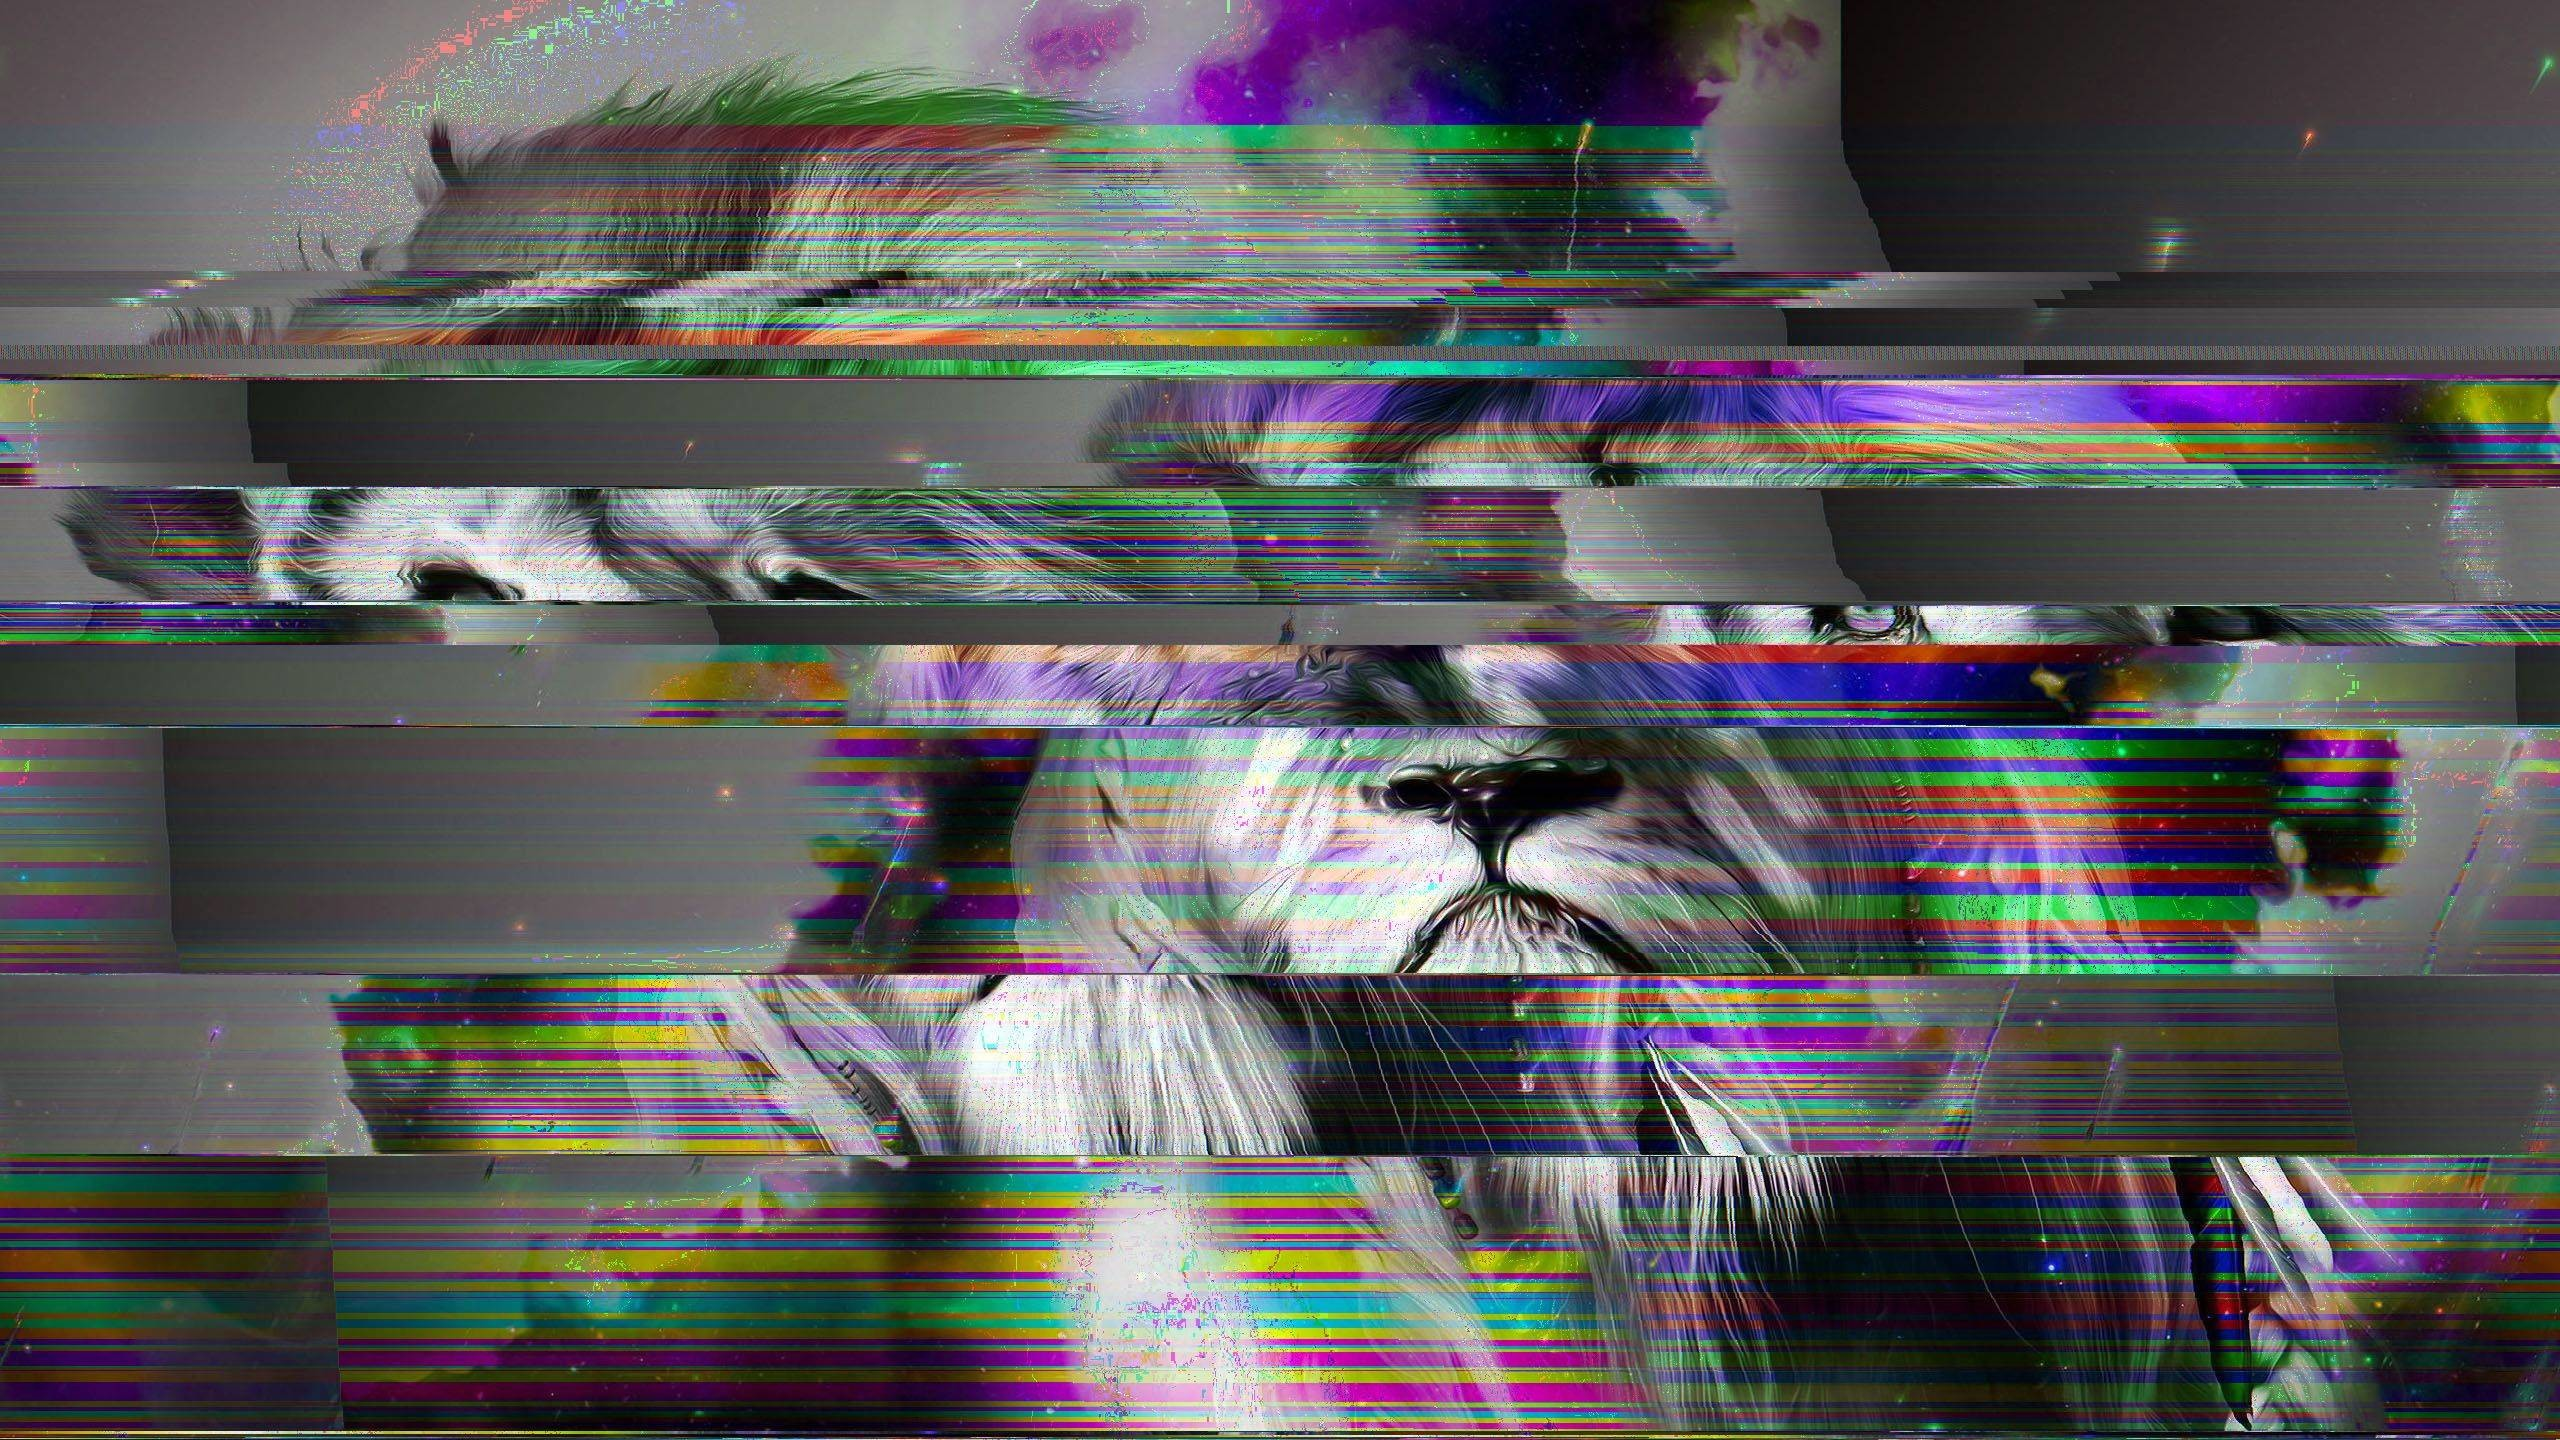 Lion Live Wallpaper Iphone X Glitch Wallpapers 183 ①